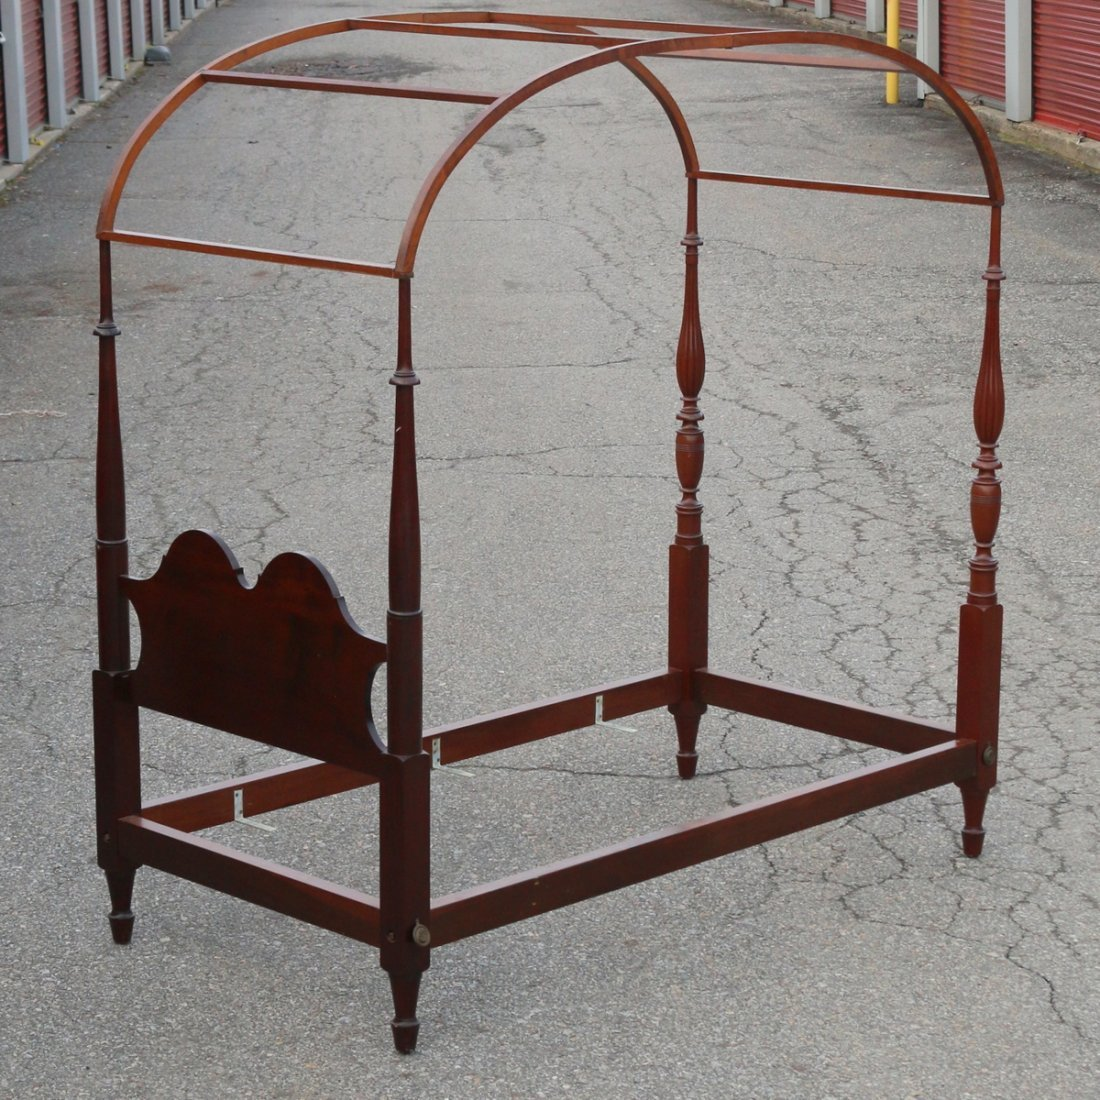 PAIR LATE FEDERAL TURNED MAHOGANY BEDSTEADS